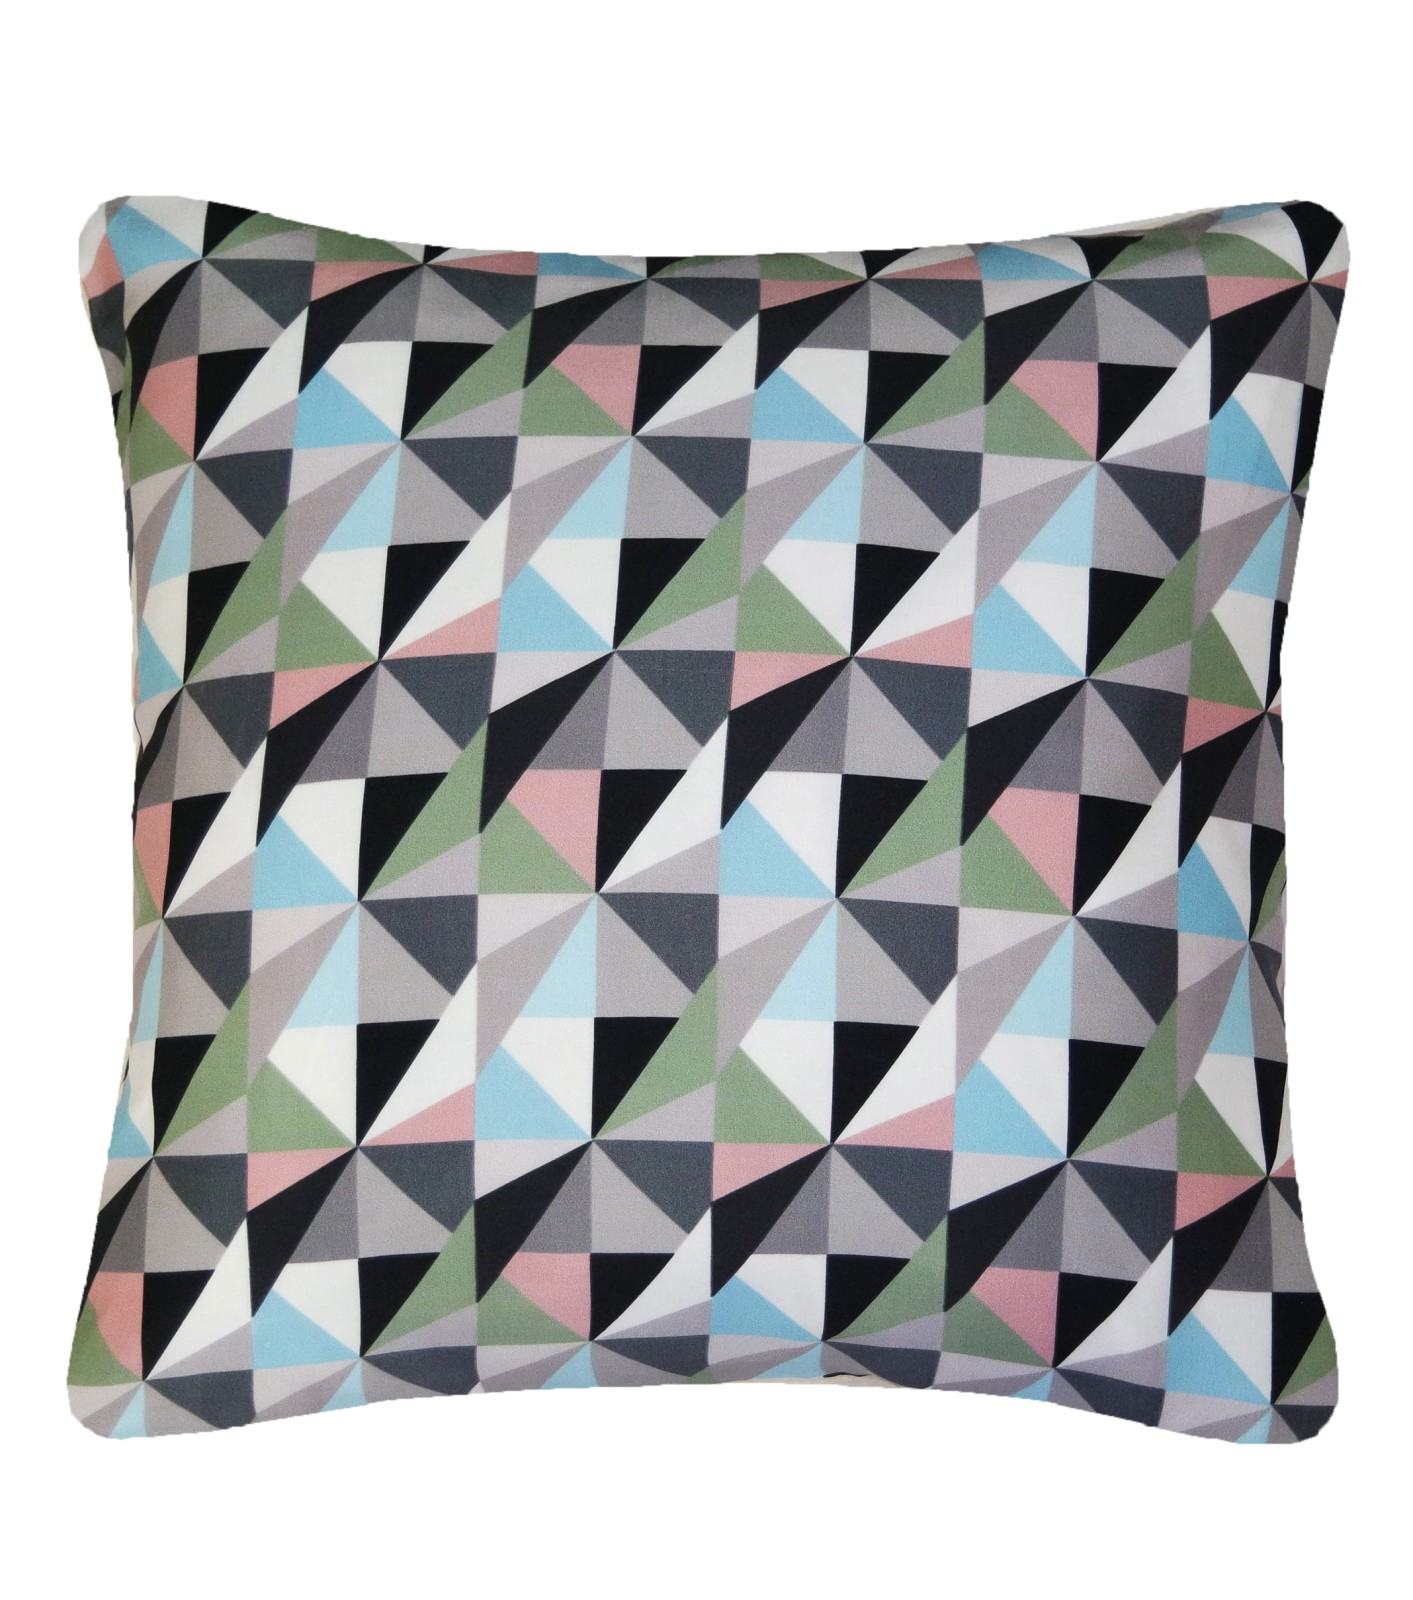 Kite Printed Square Cushion Khaki and Pink